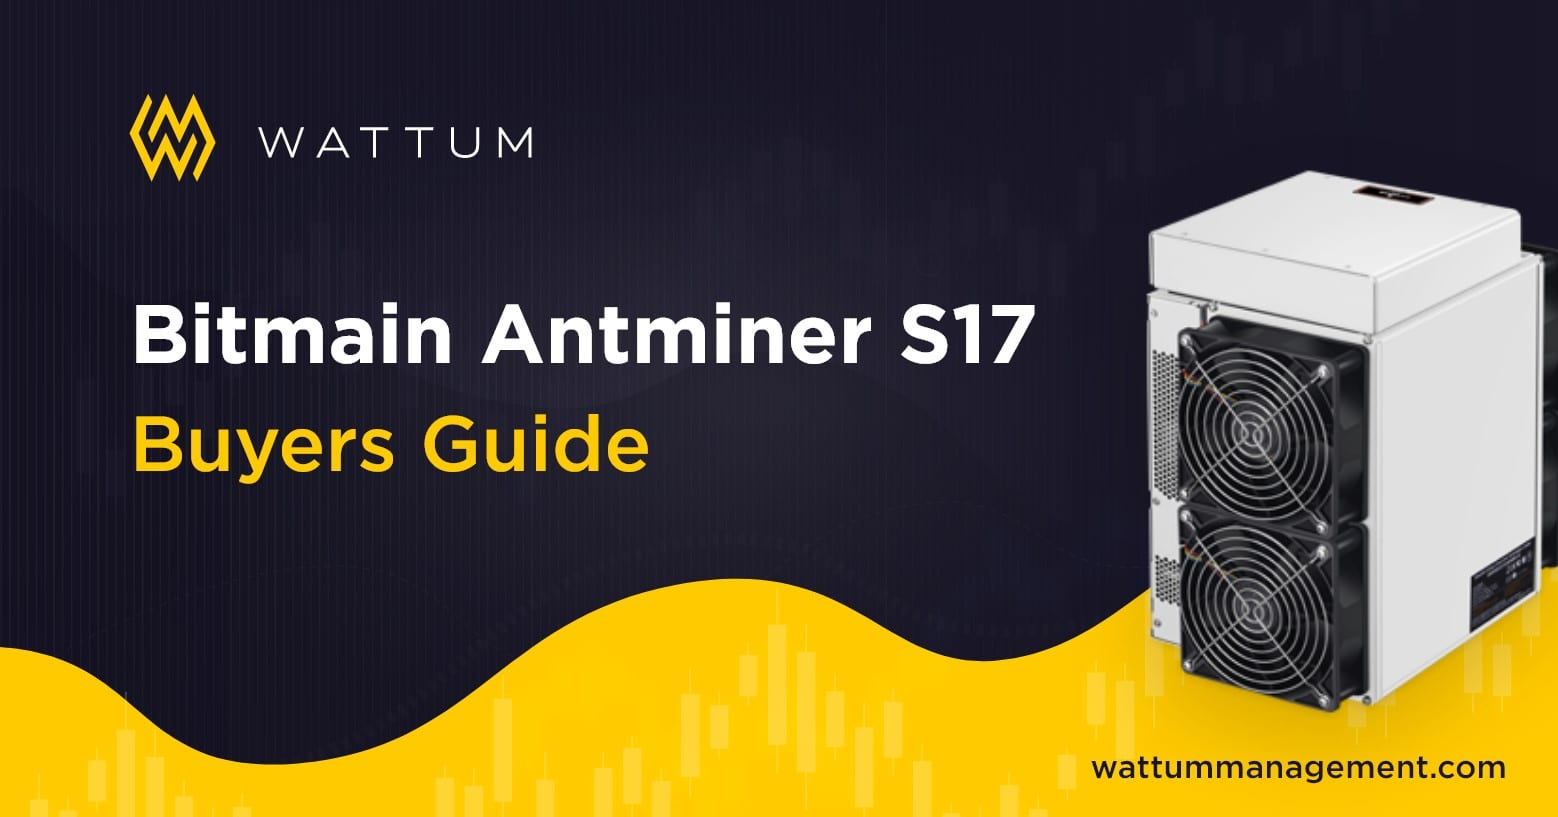 Bitmain Antminer S17 Buyers Guide